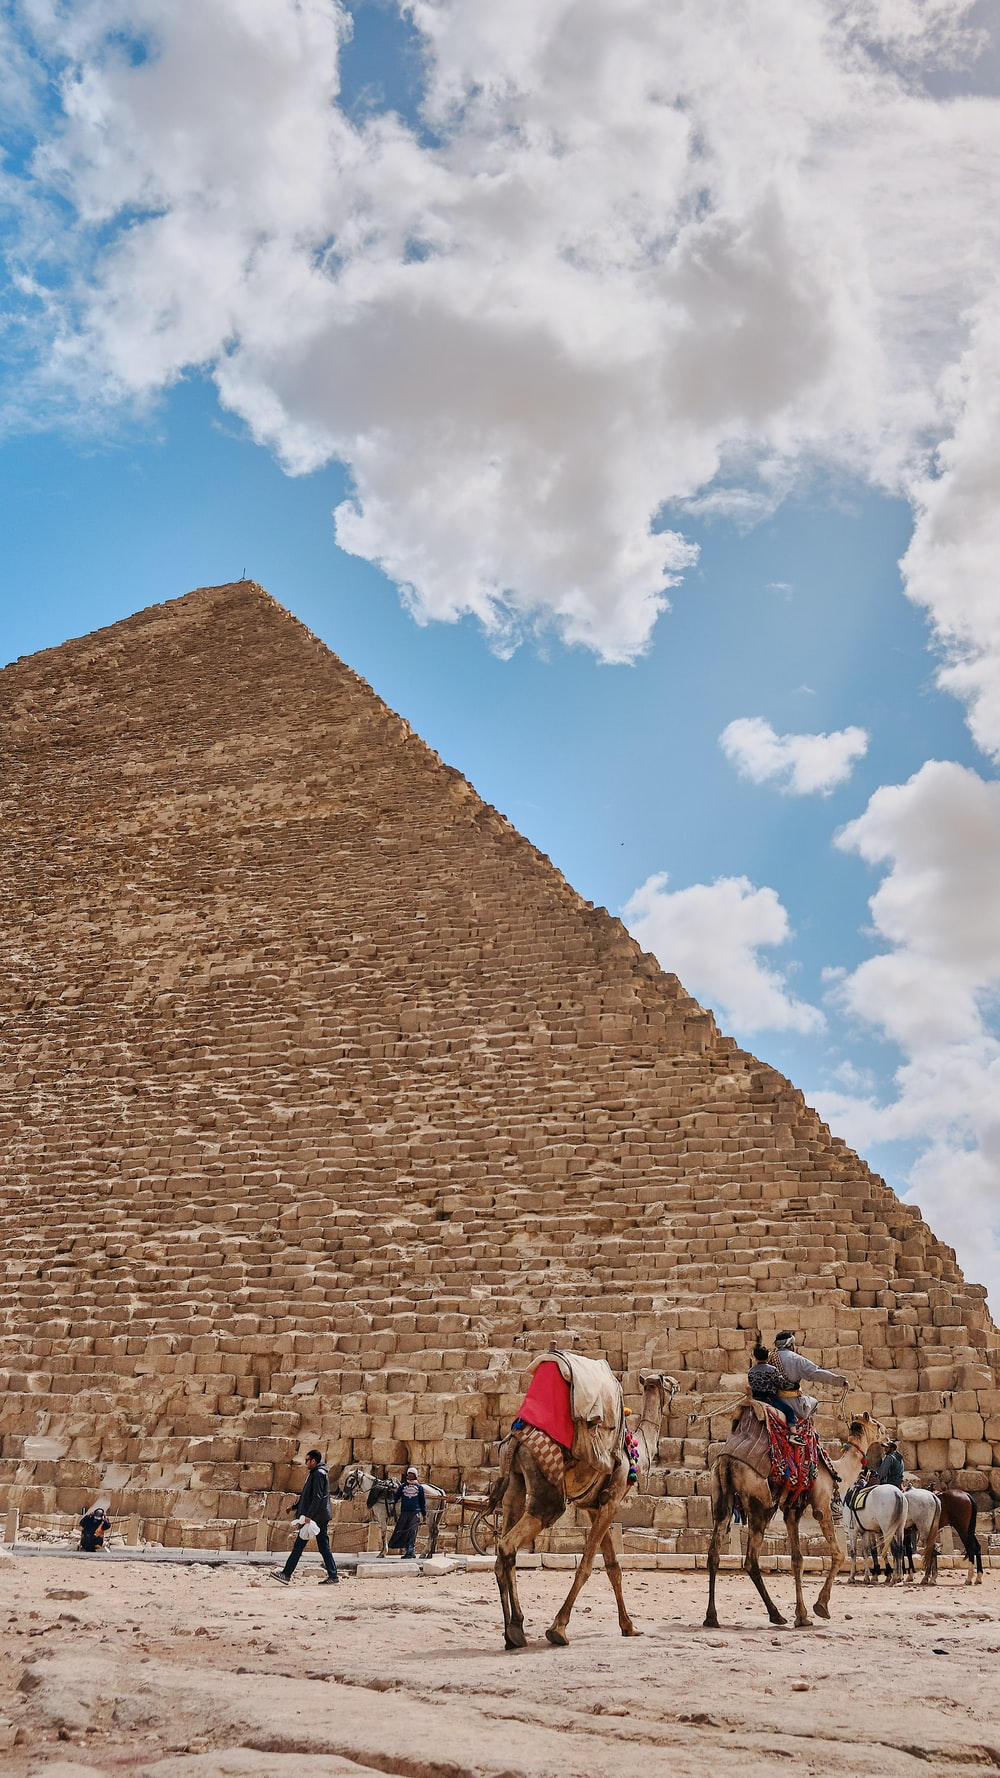 people riding camels by pyramid during daytime